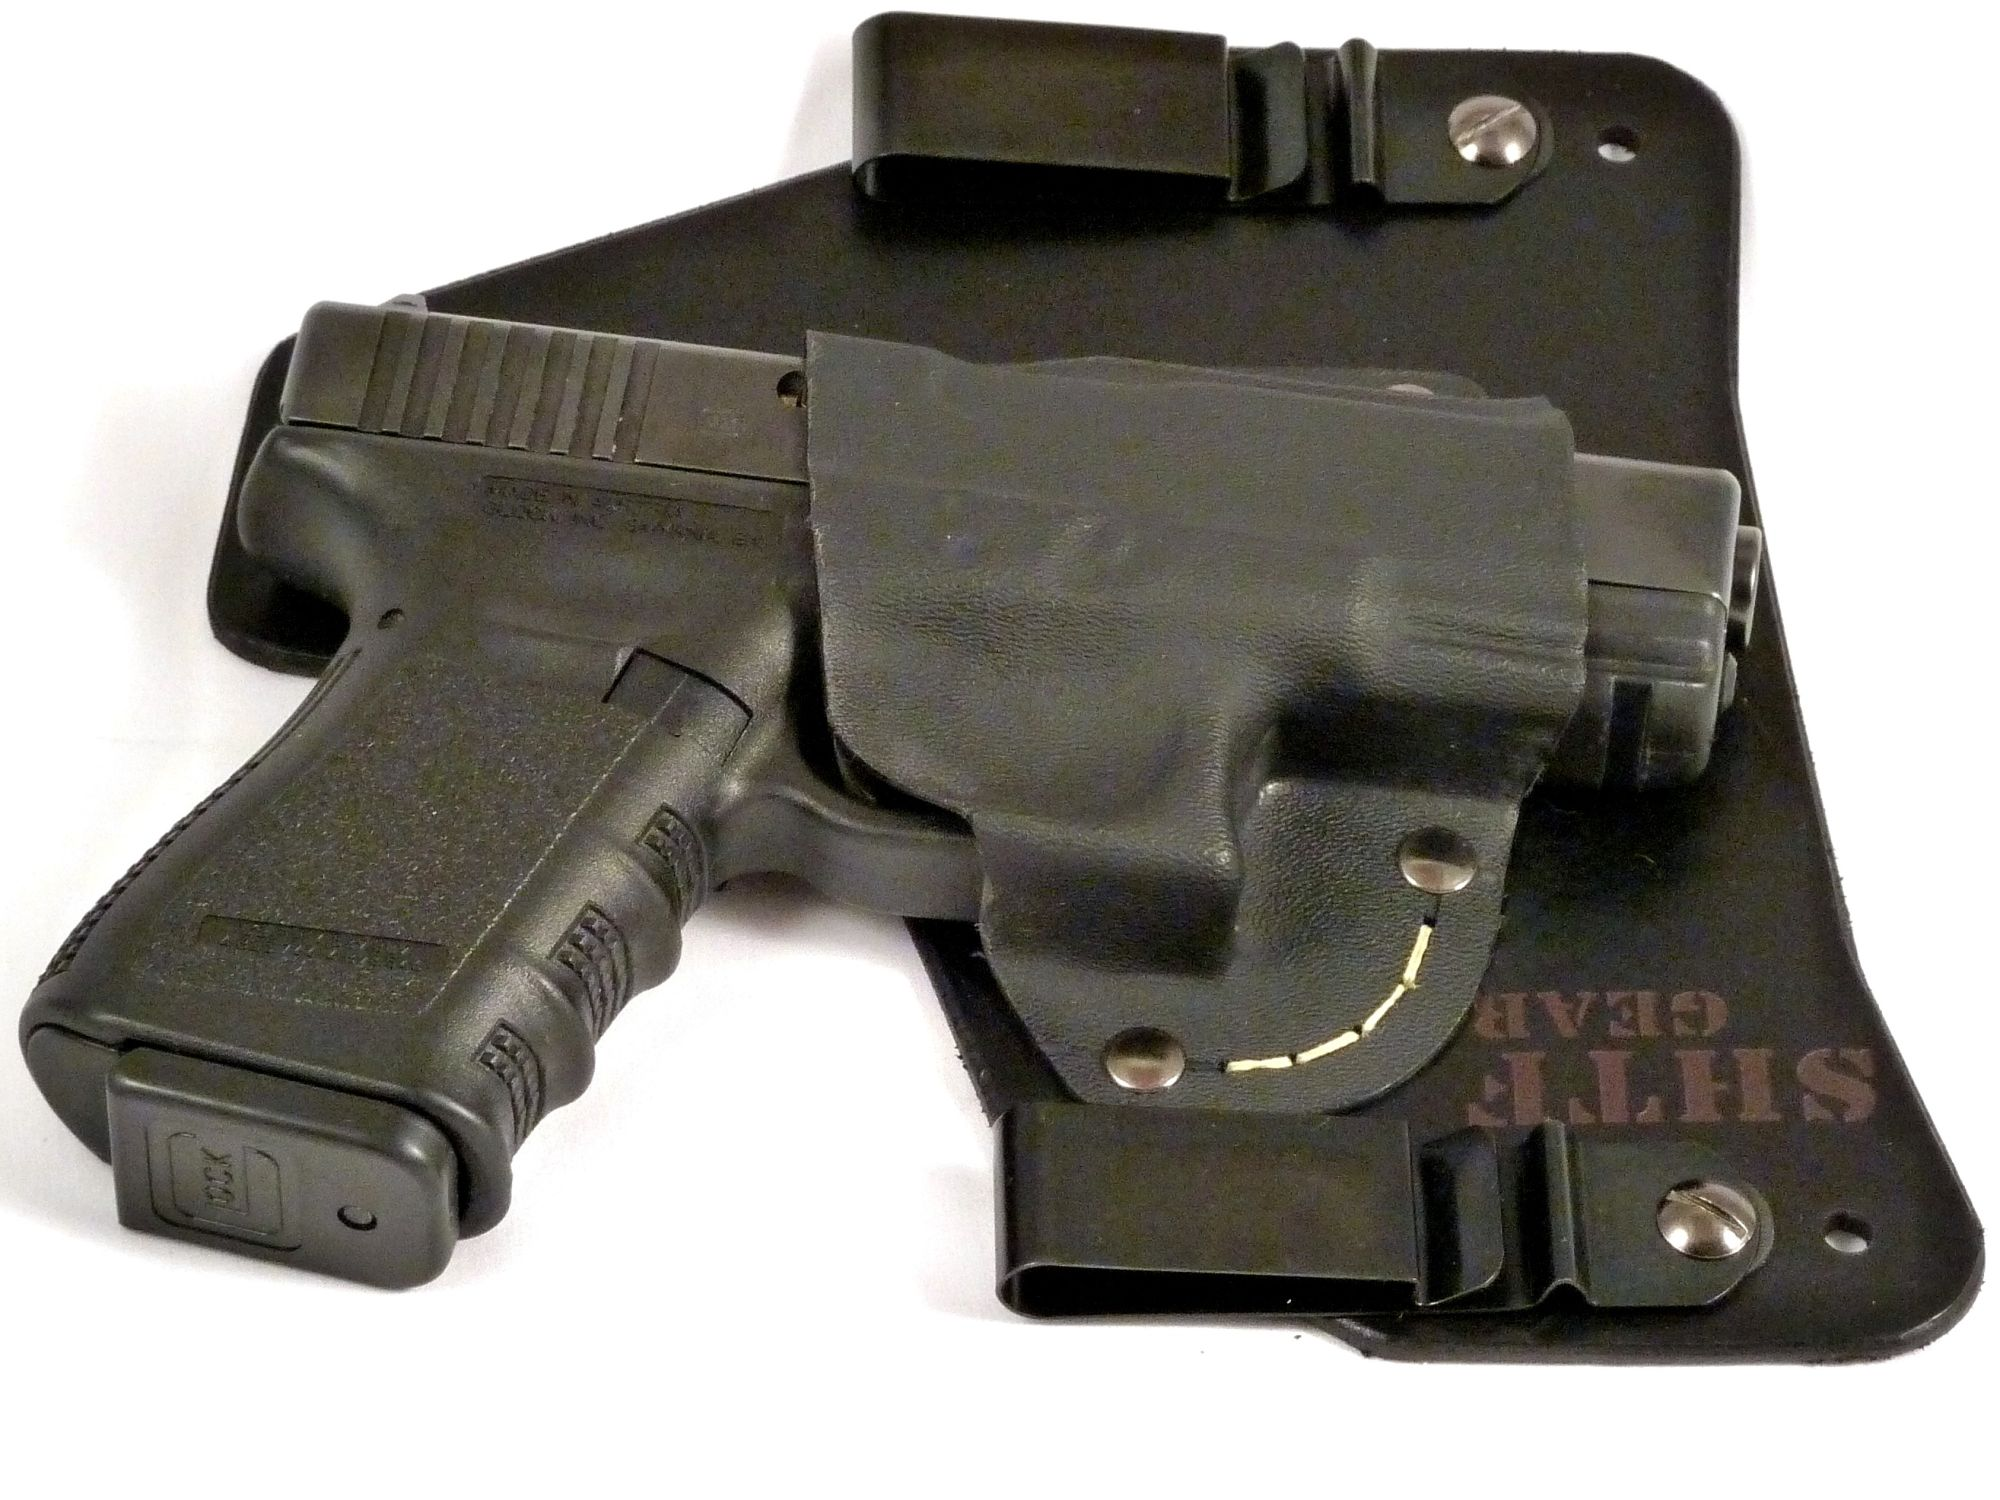 Give a new guy some help with cc a glock 19?-glock-gun-left-2000.jpg